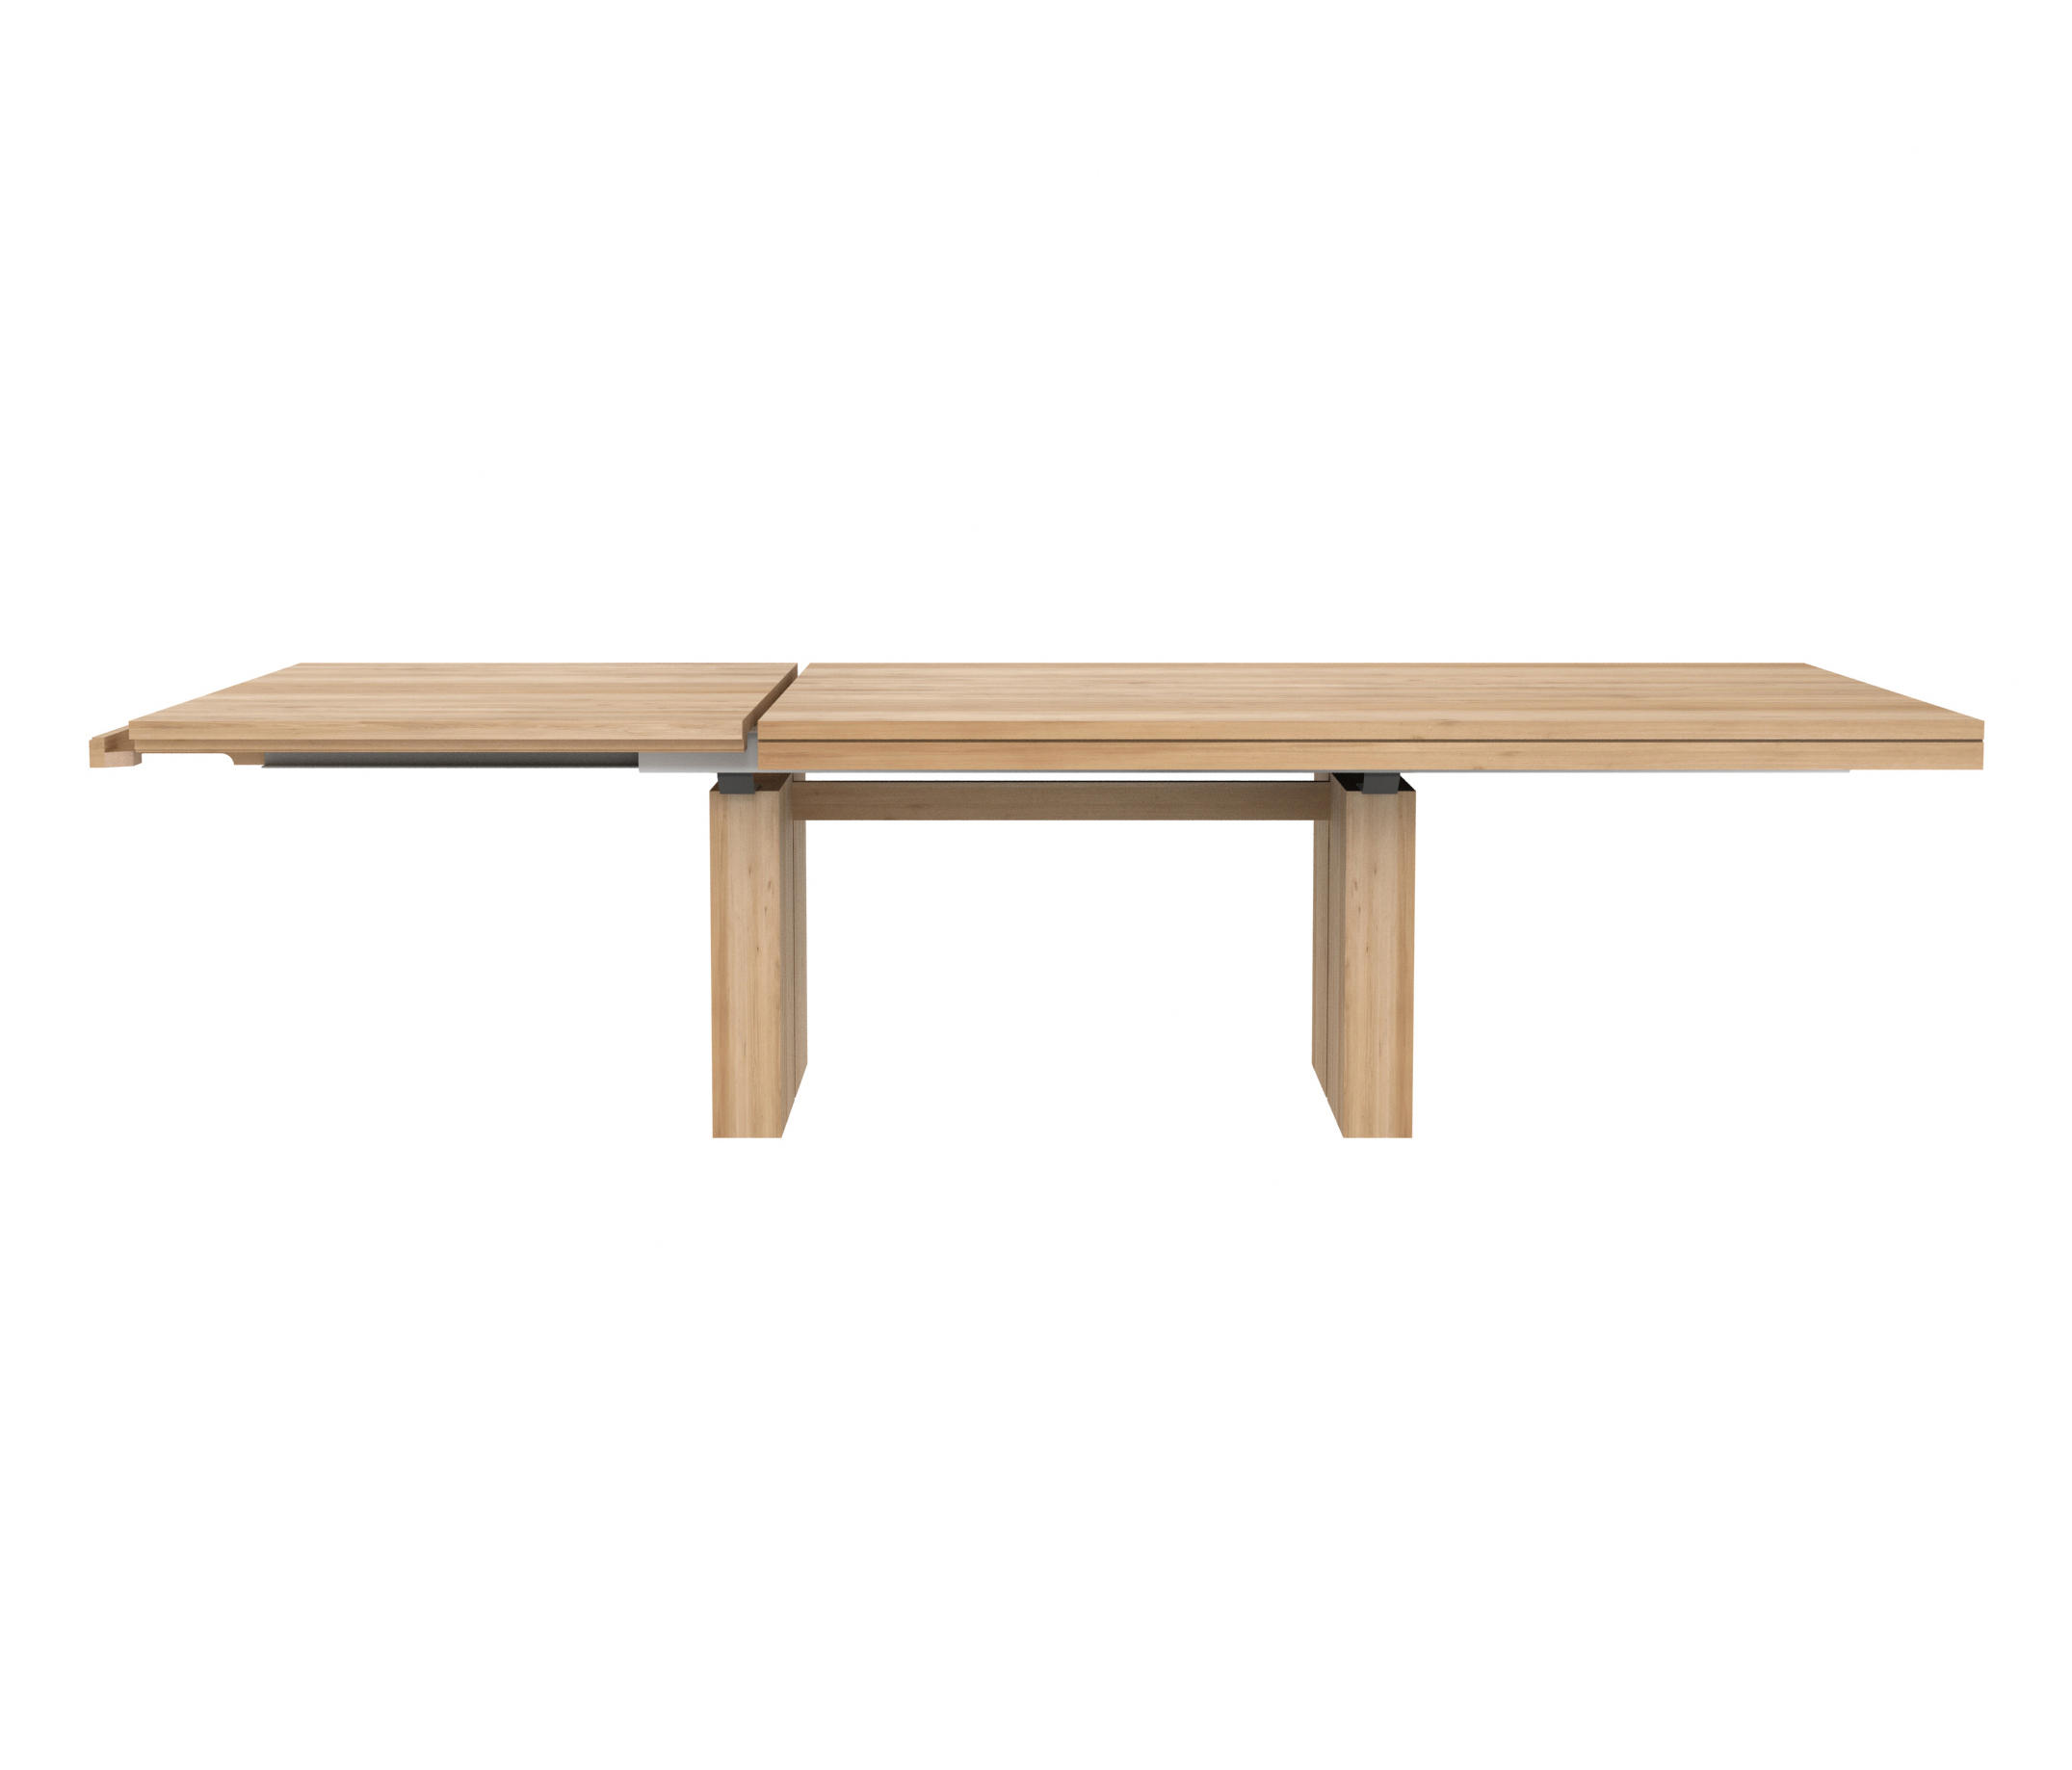 Oak double extendable dining table restaurant tables from ethnicraft architonic - Oak extendable dining table ...